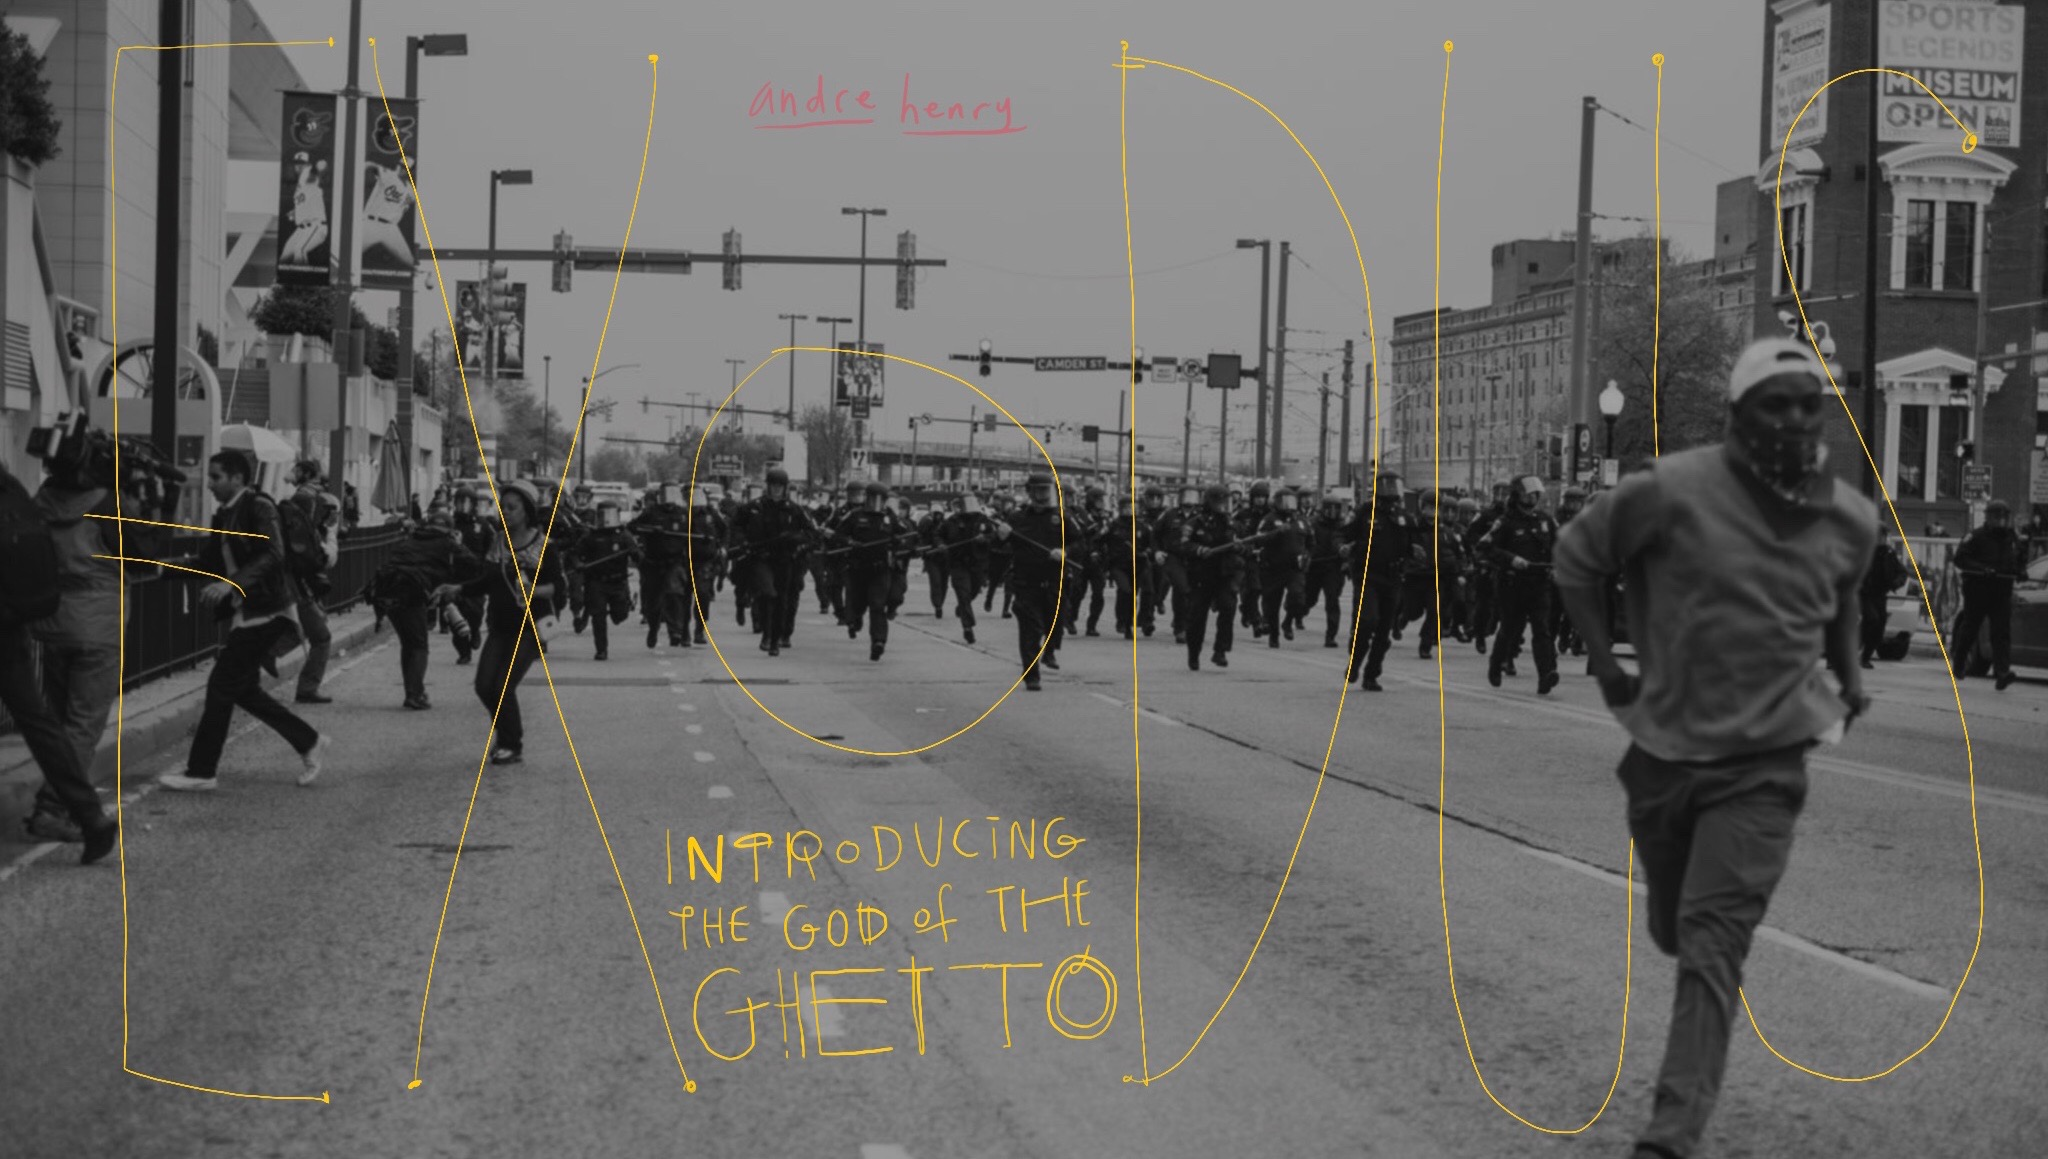 Photographer Devin Allen's photo from the Freddie Gray protests in Baltimore on April 25,2015